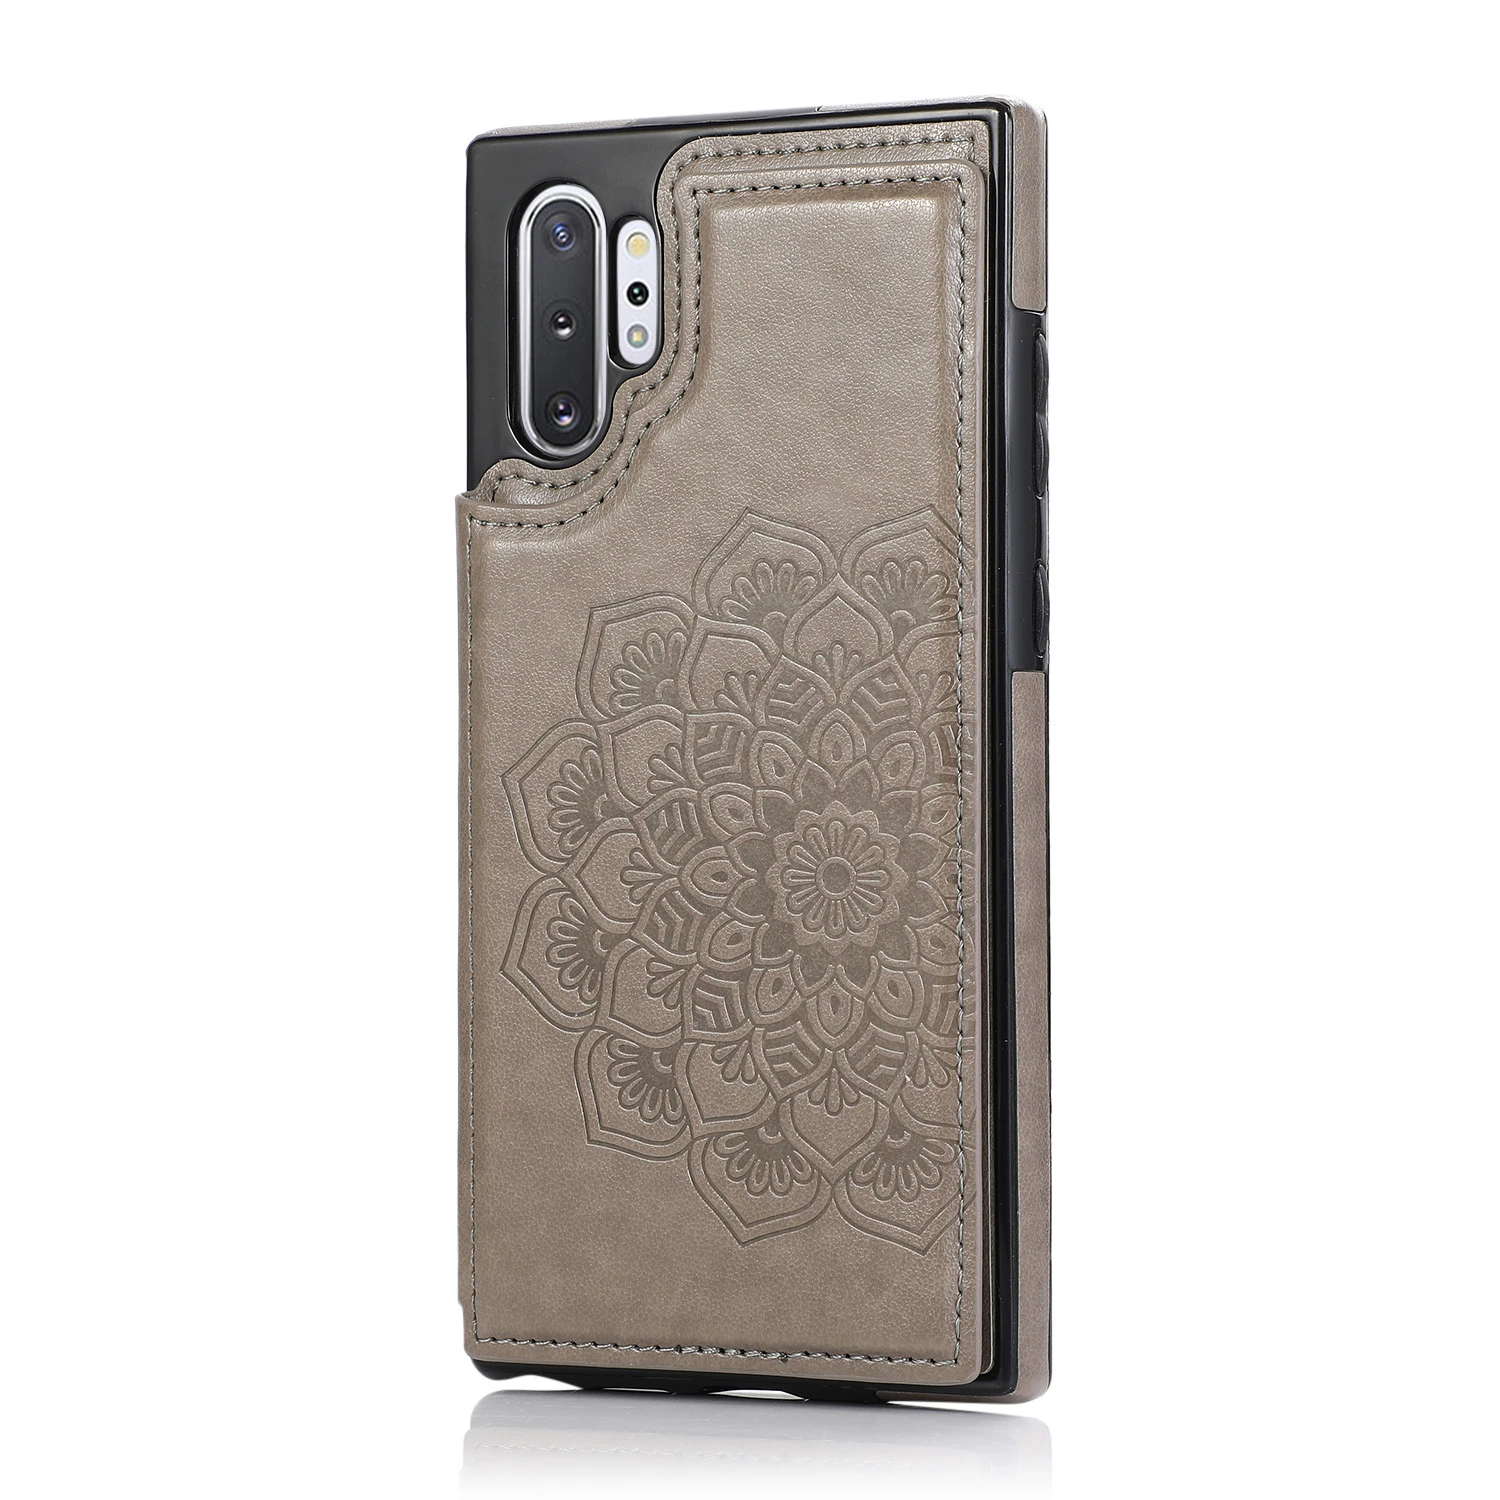 2020 New Style Luxury Wallet Cover For Samsung Note10 Series